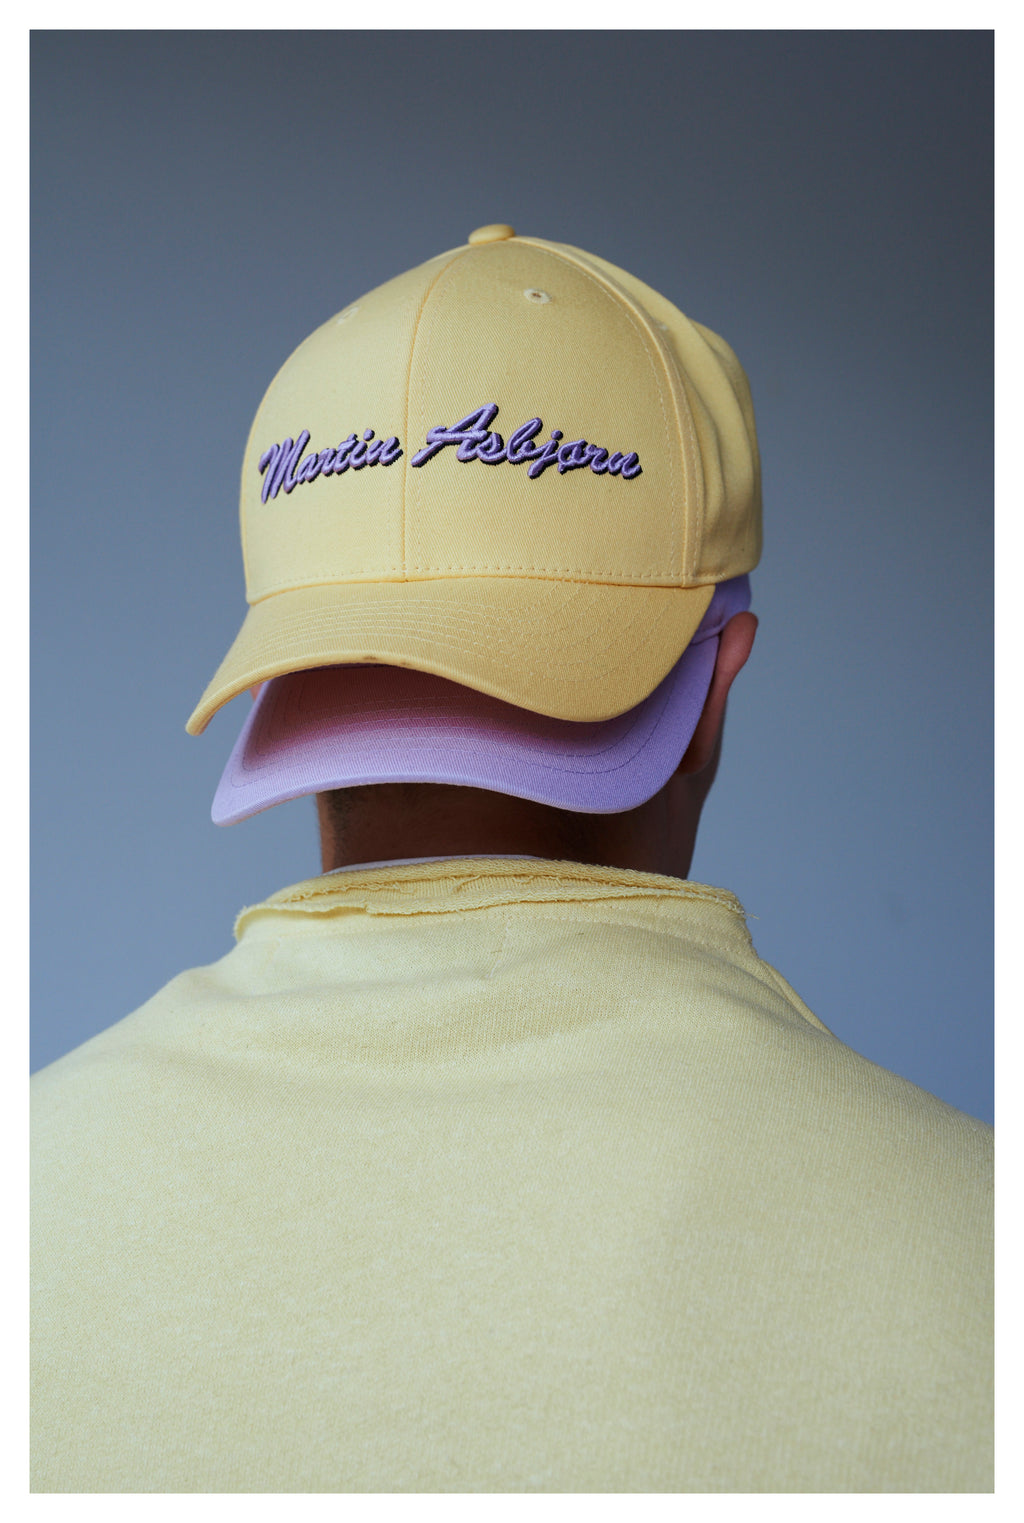 Martin Asbjørn Danish Menswear Designer Shop caps belts and other Accessories